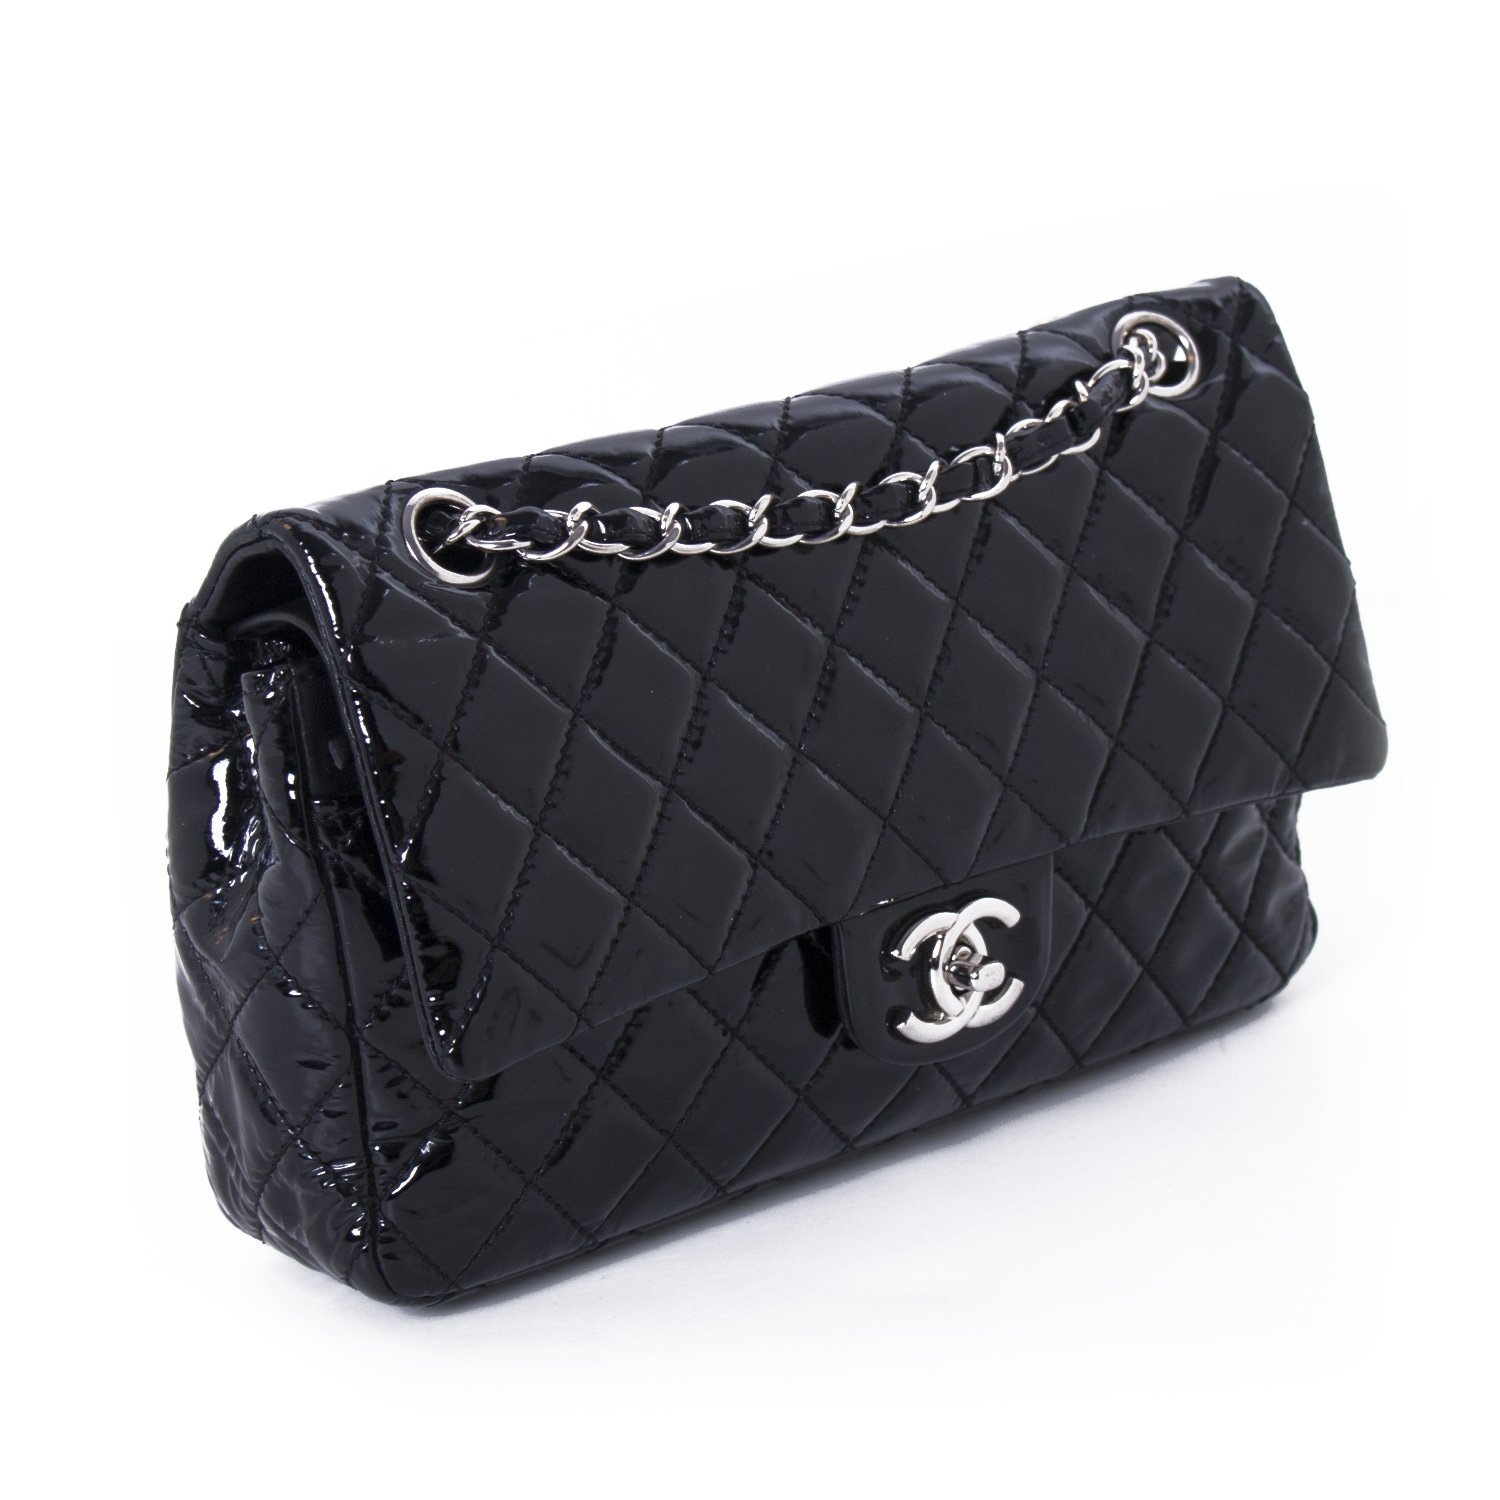 c28156a5a38a41 2-Chanel-Medium-Patent-Leather-Double-Flap-Bag-3.jpg